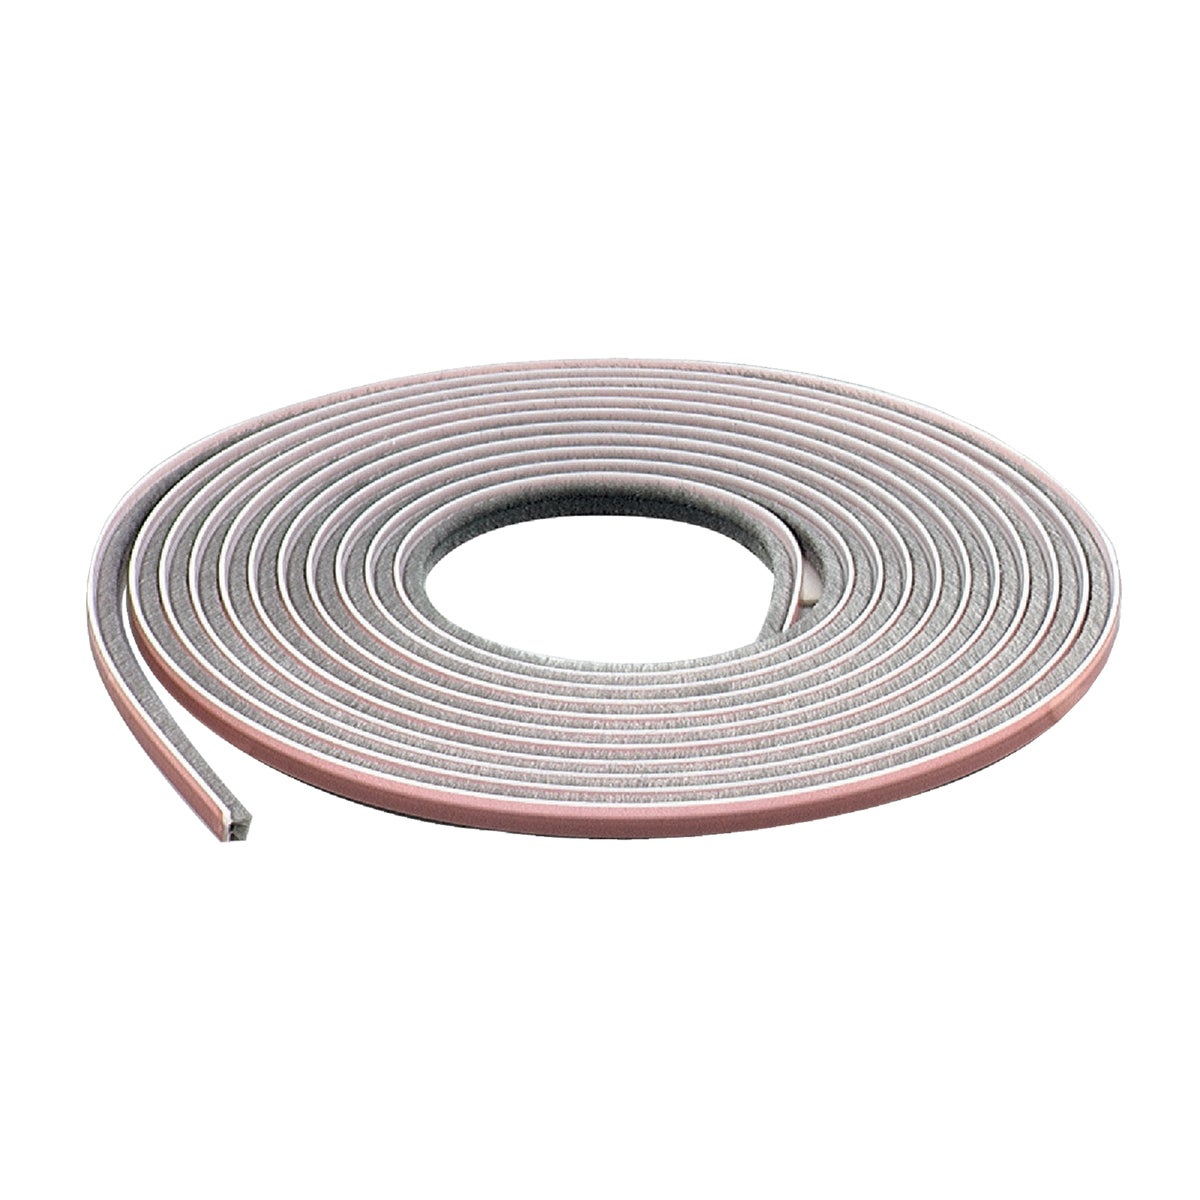 17' PILE WEATHERSTRIP - 04267 by M D Building Prod